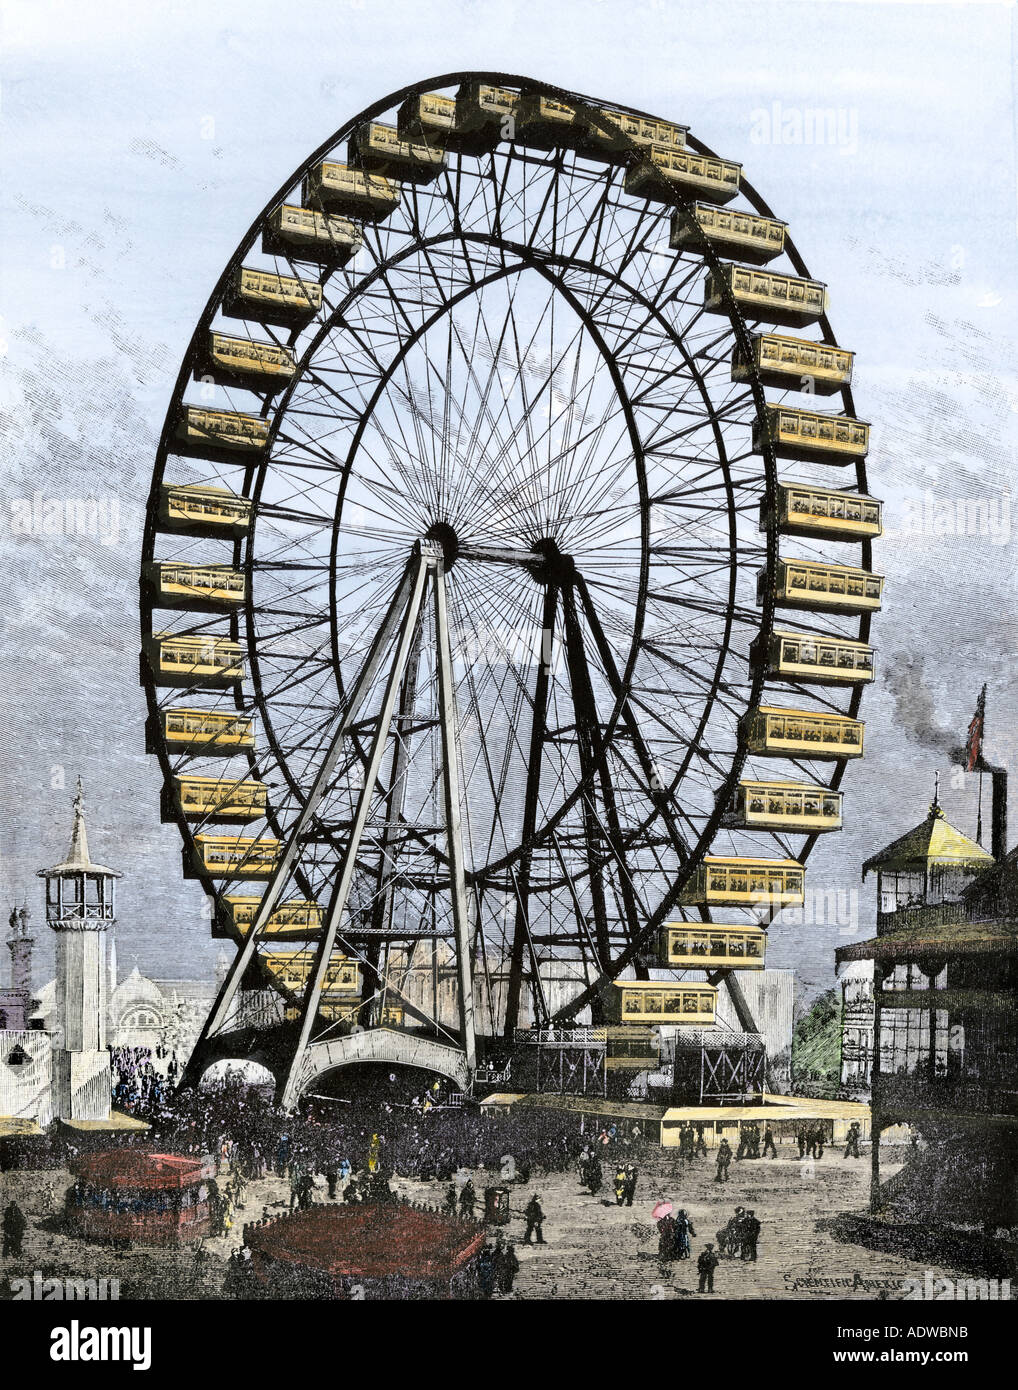 First Ferris Wheel 250 feet in diameter with 36 cars at Worlds Fair and Columbian Exposition Chicago 1893. Hand Stock Photo